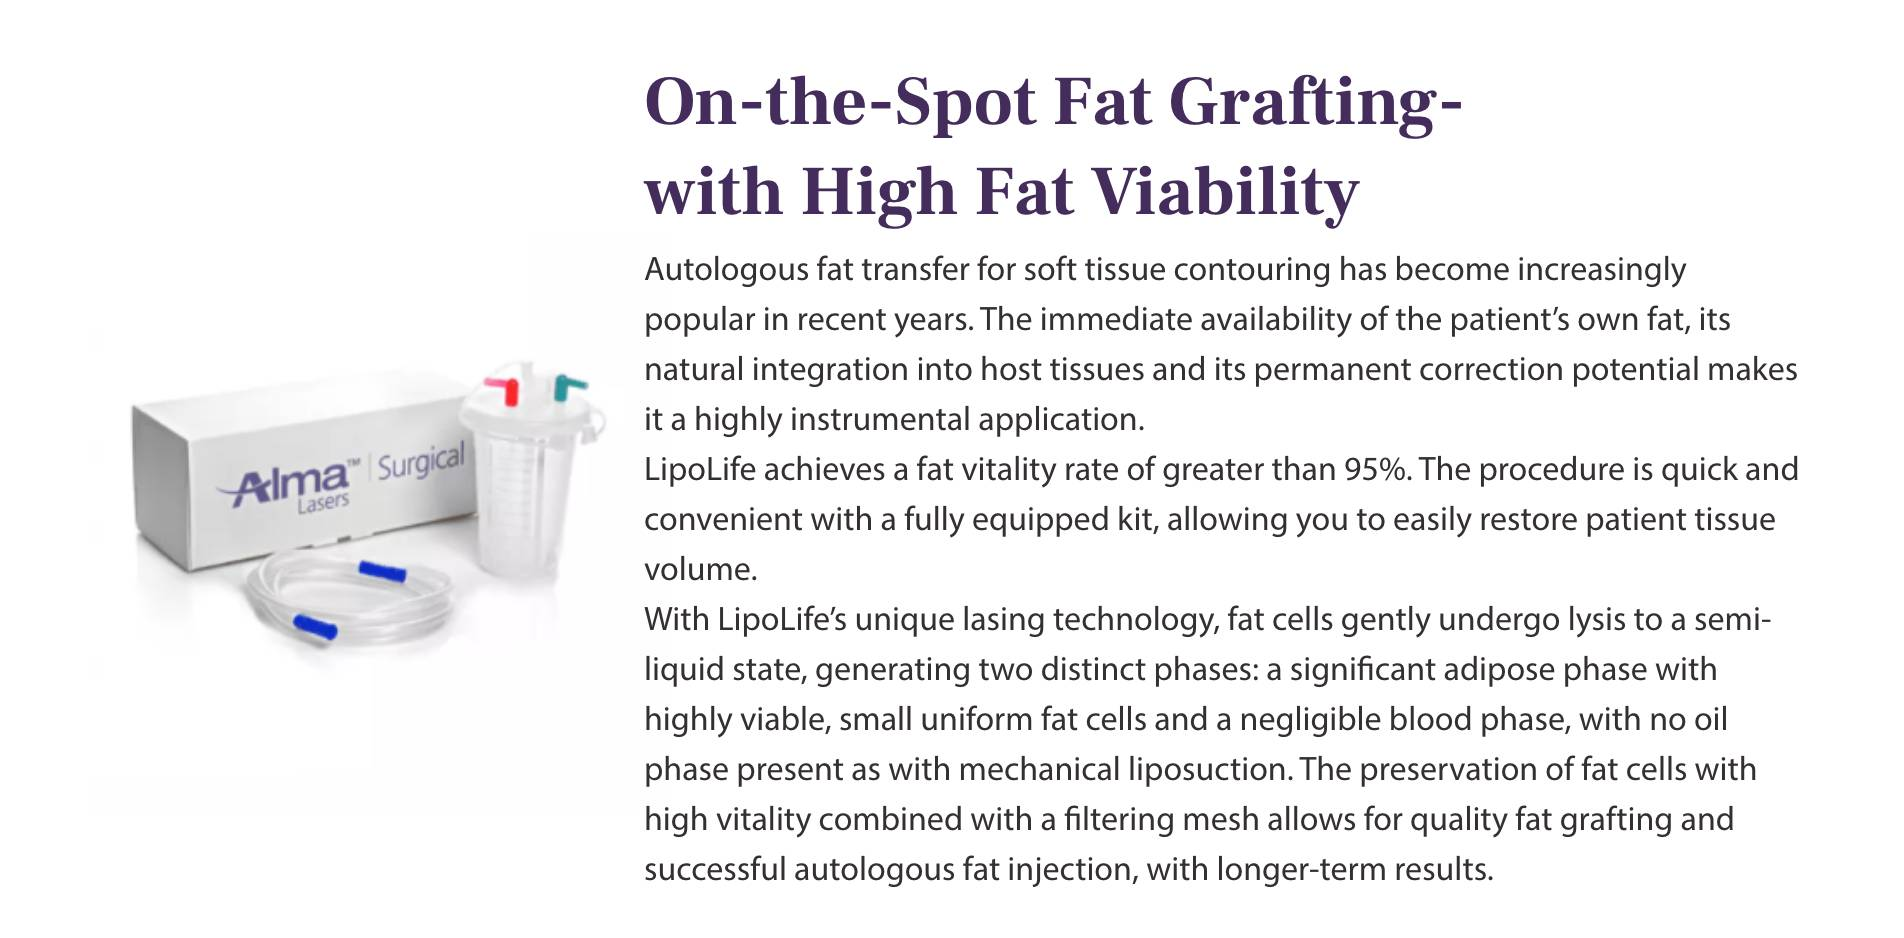 On-the-Spot Fat Grafting- with High Fat Viability@2x